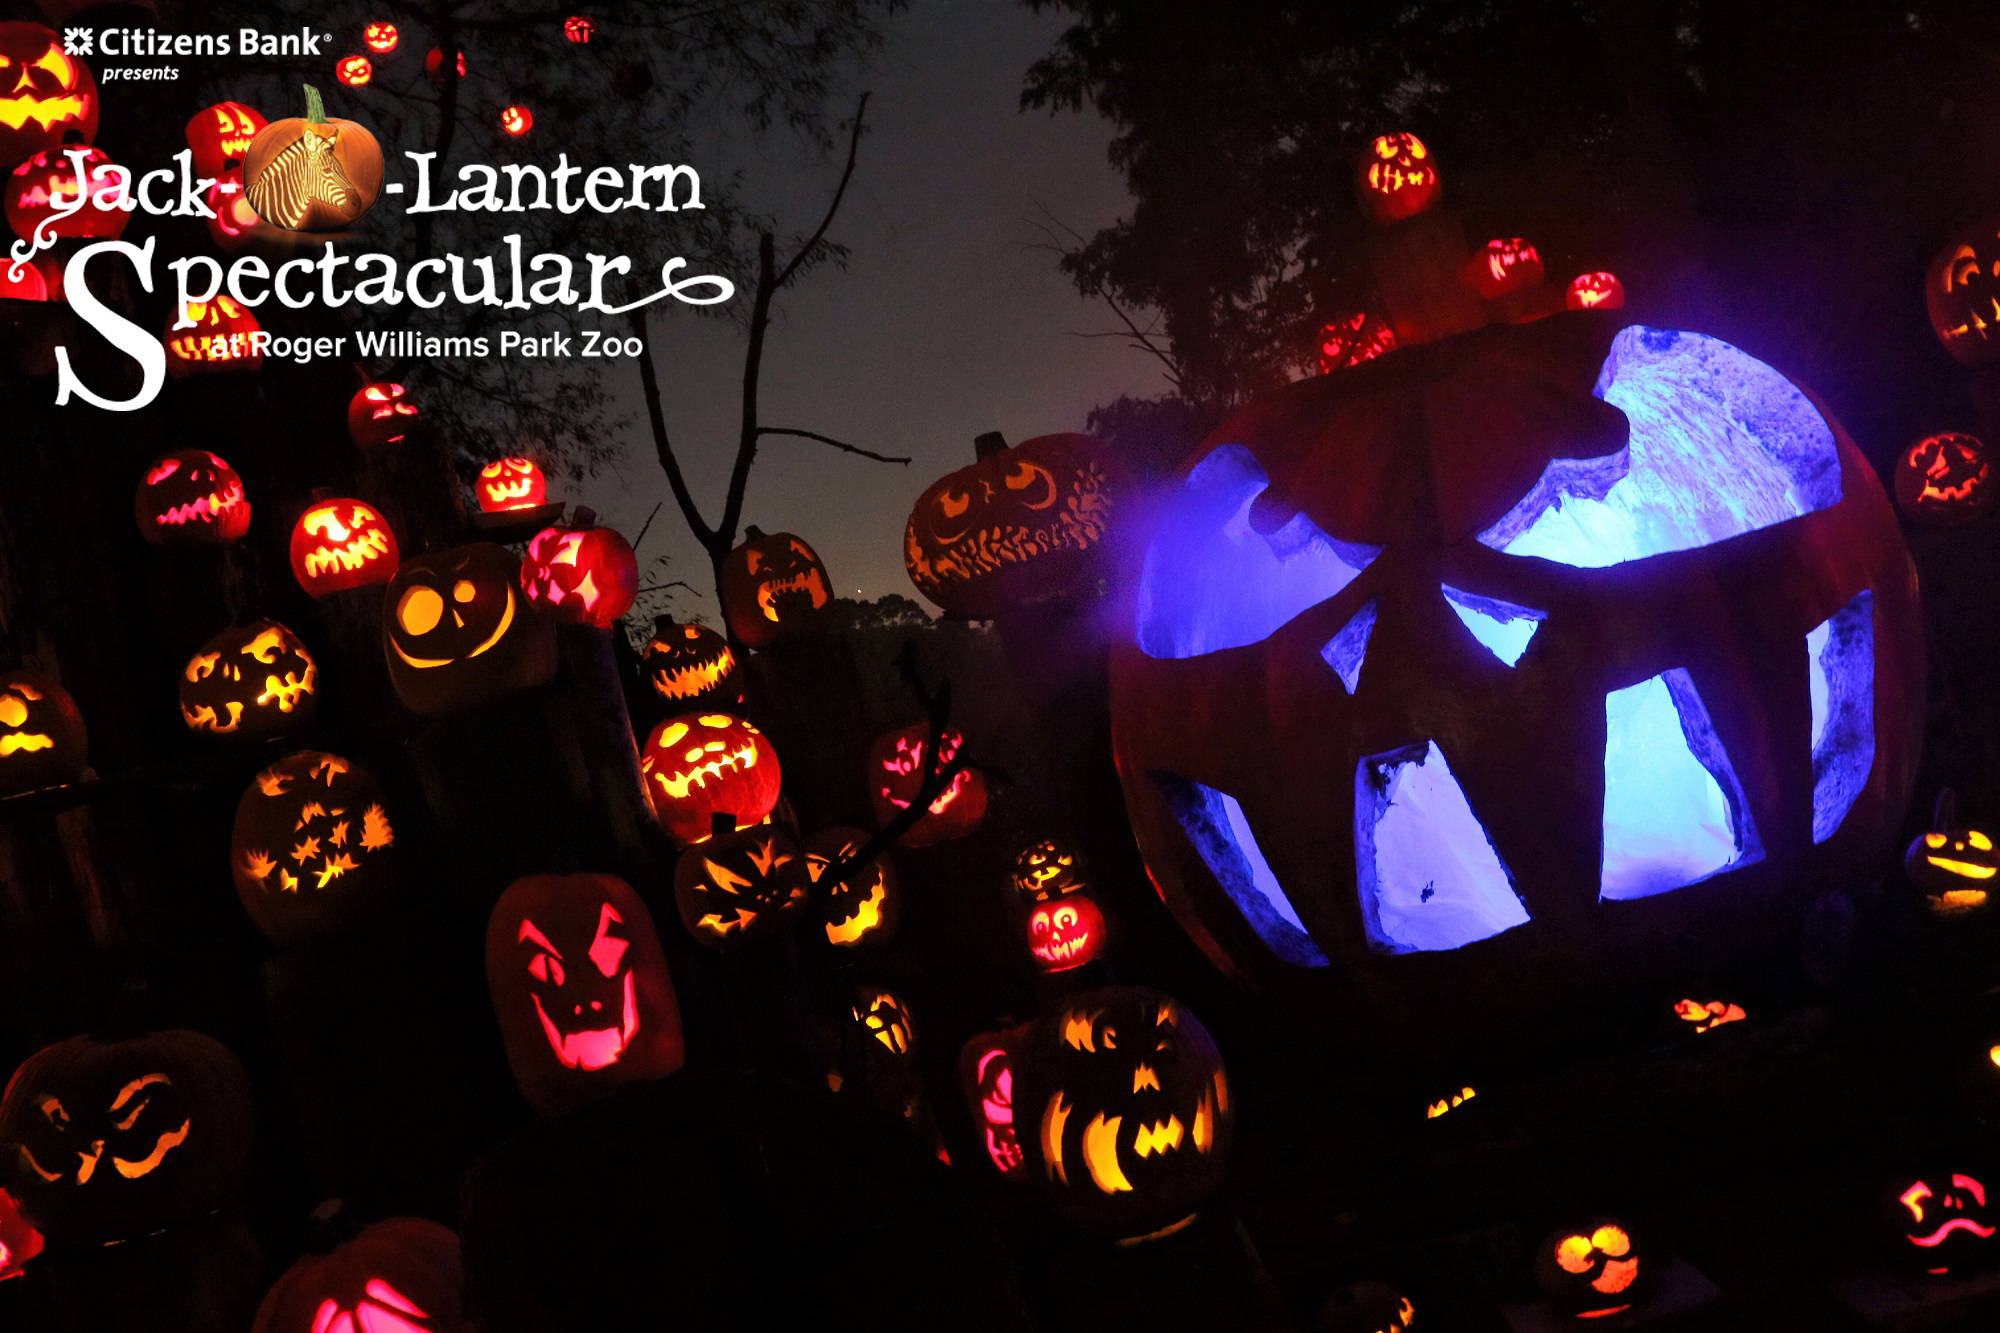 7 tips for the jack-o-lantern spectacular | roger williams park zoo